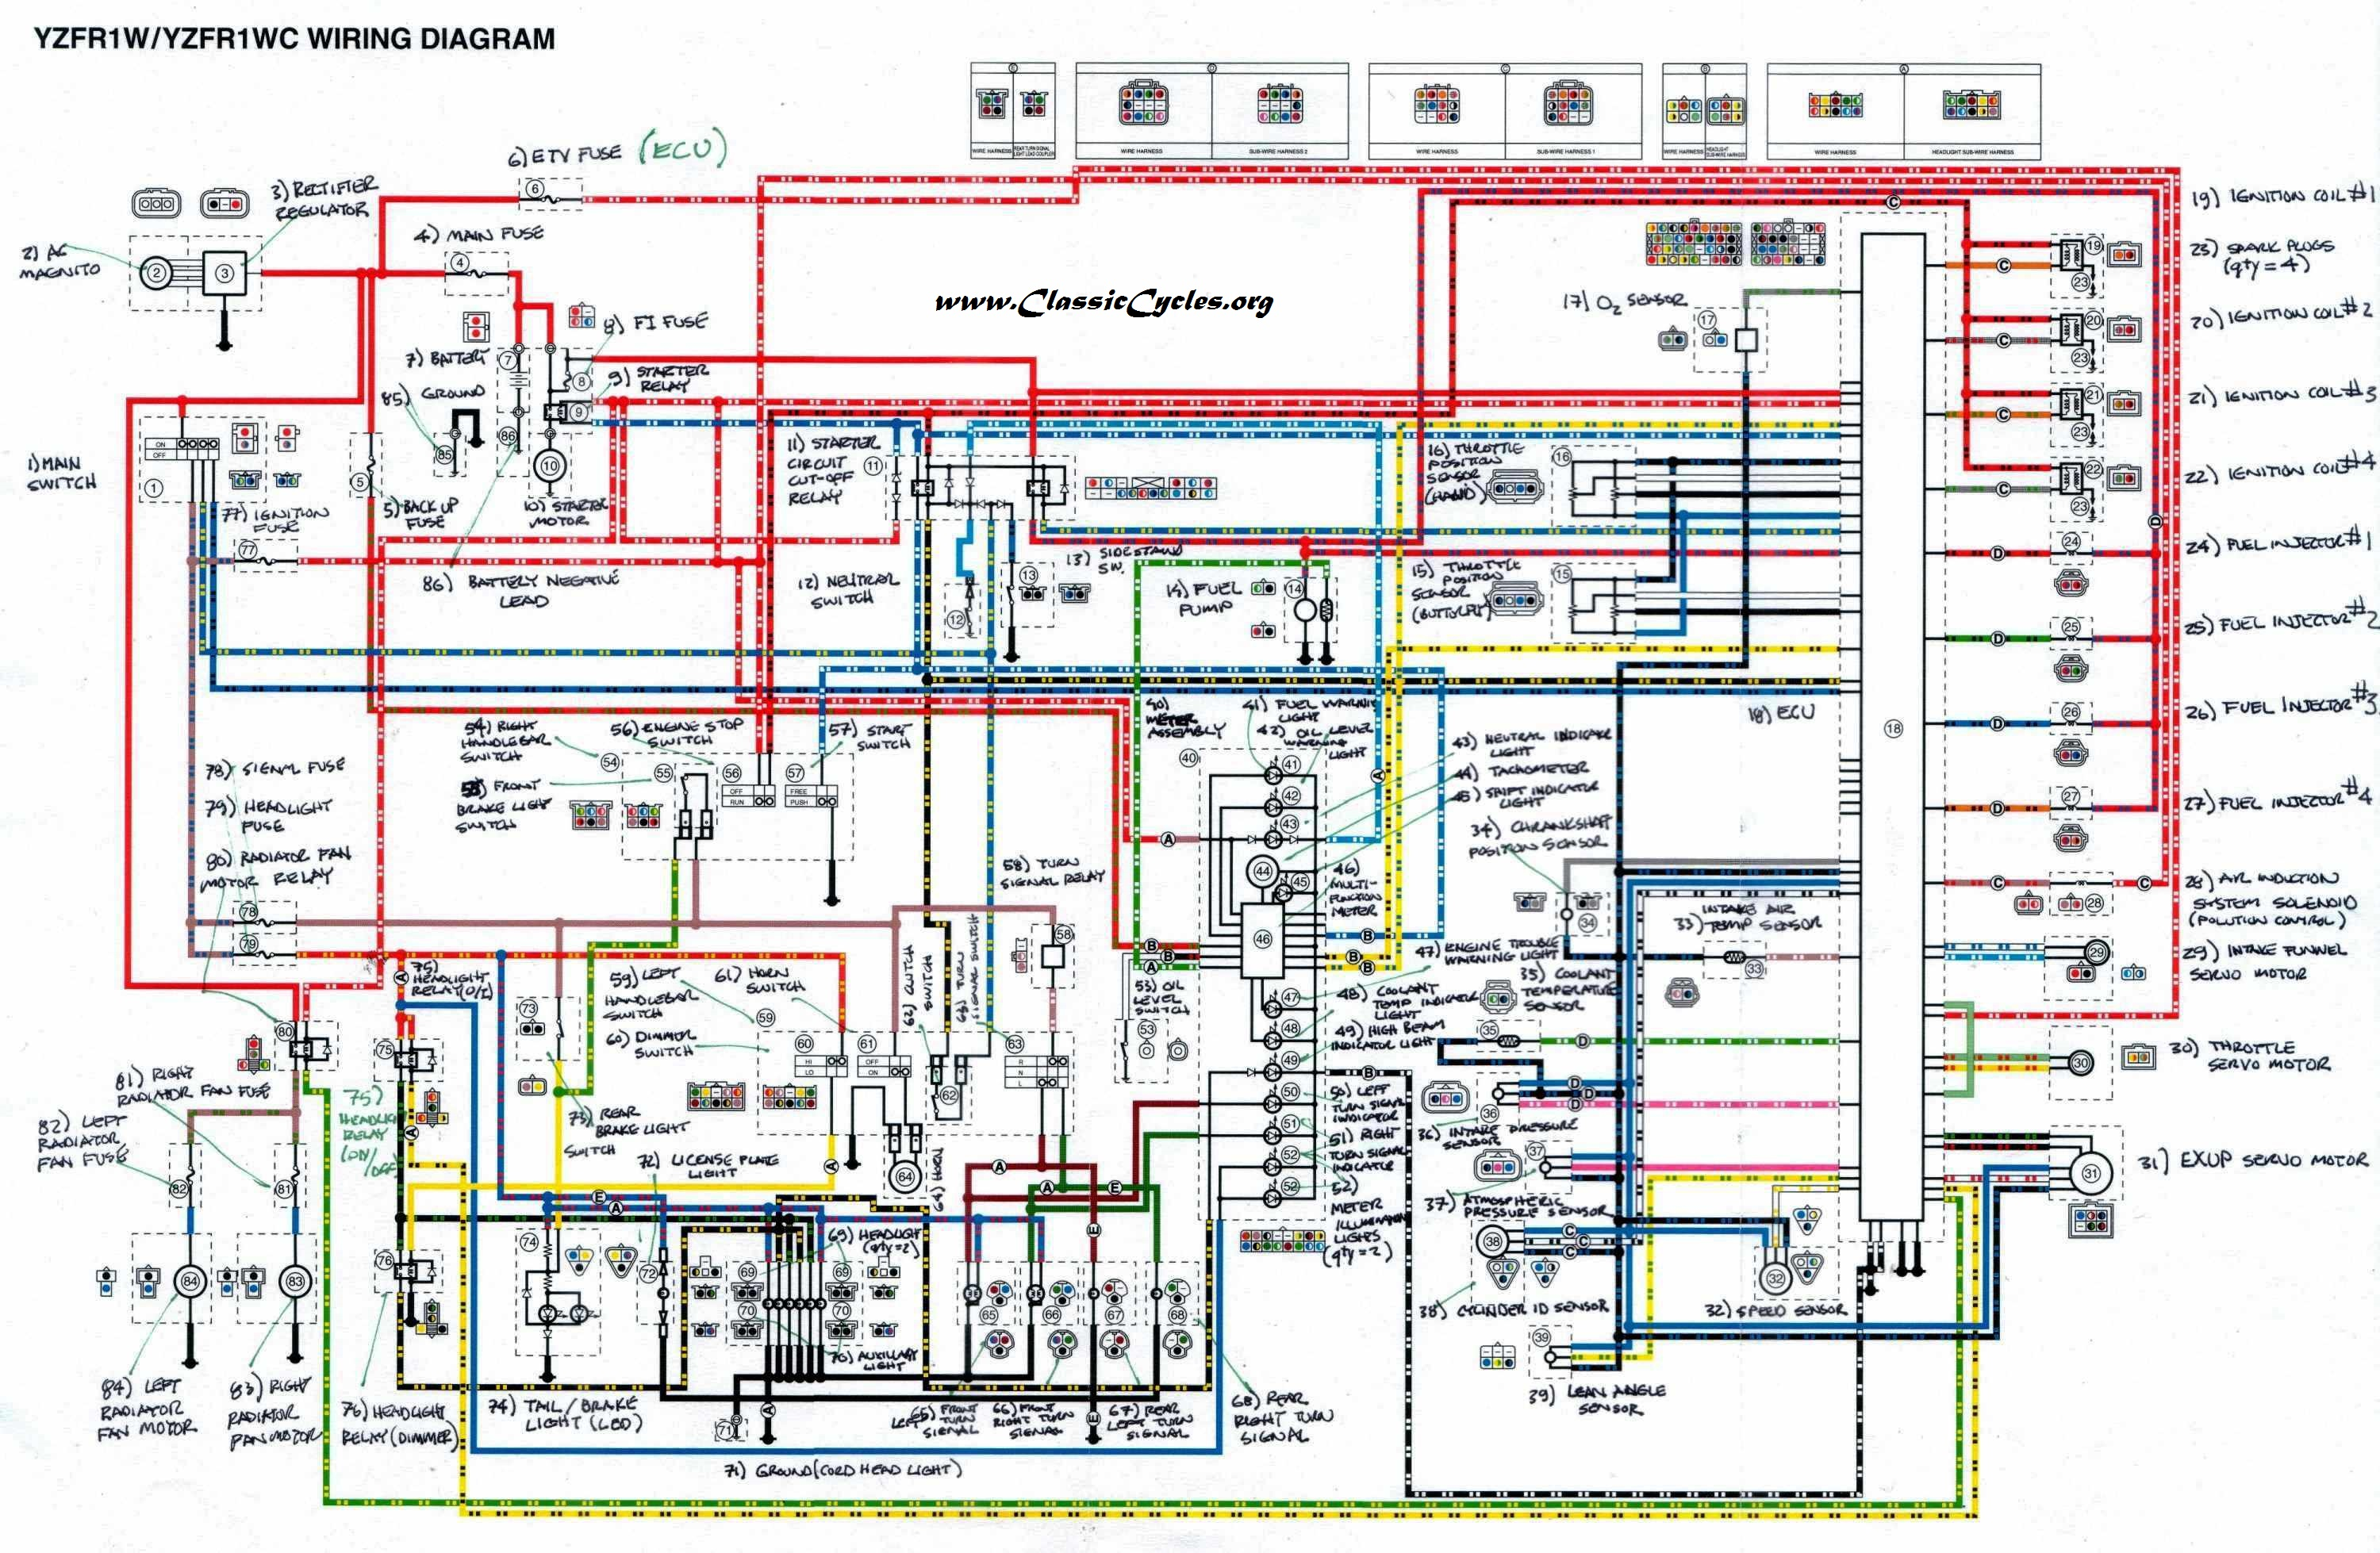 [DIAGRAM_09CH]  SB_1443] Yamaha R1 Wiring Diagram Furthermore Mercury Outboard Ignition  Wiring Download Diagram | 1998 Yamaha Outboard Wiring Diagram |  | Xortanet Emba Mohammedshrine Librar Wiring 101